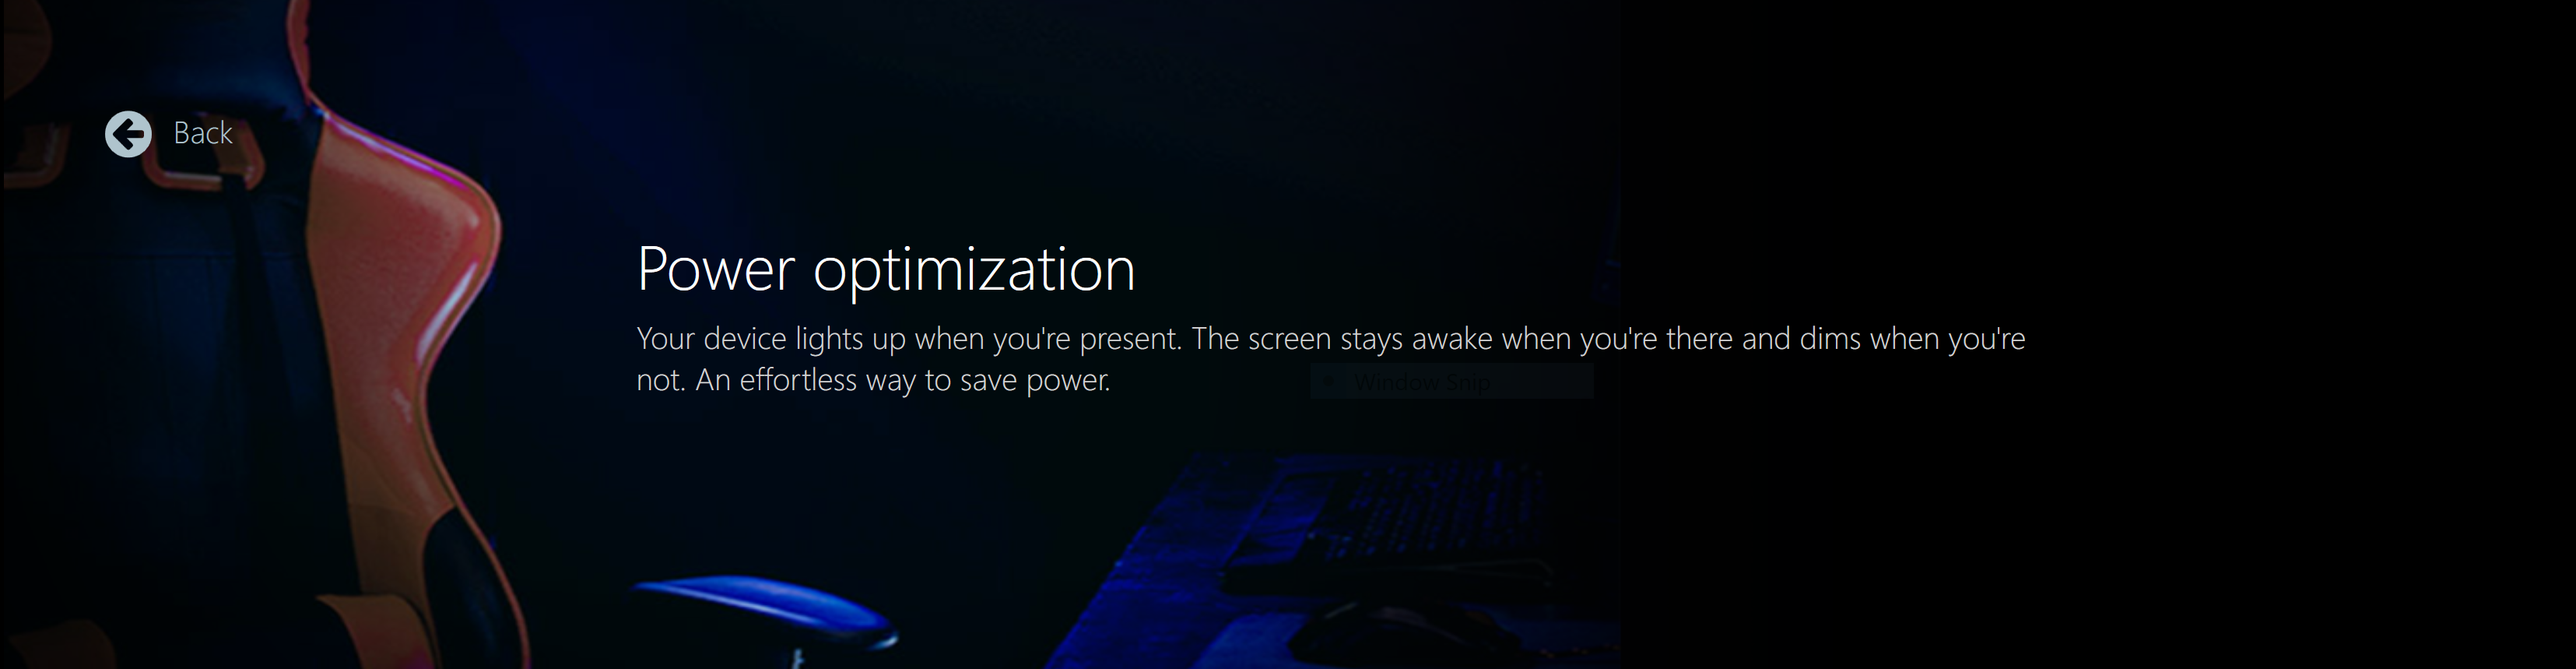 Windows Interaction features for Alienware – Tobii Eye